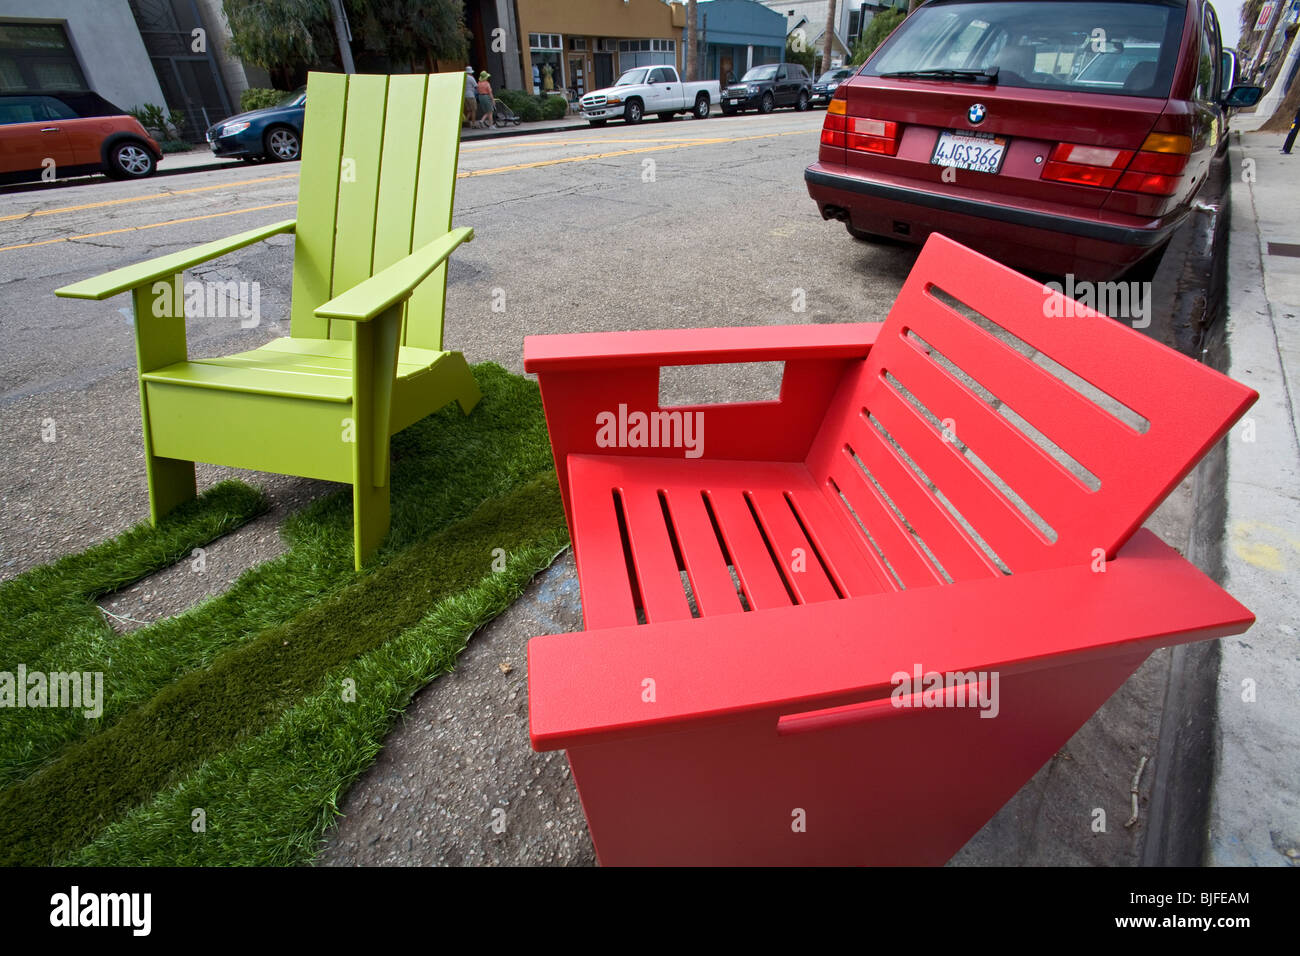 Recycled plastic outdoor furniture by loll designs made from stock photo royalty free image Furniture made from recycled plastic